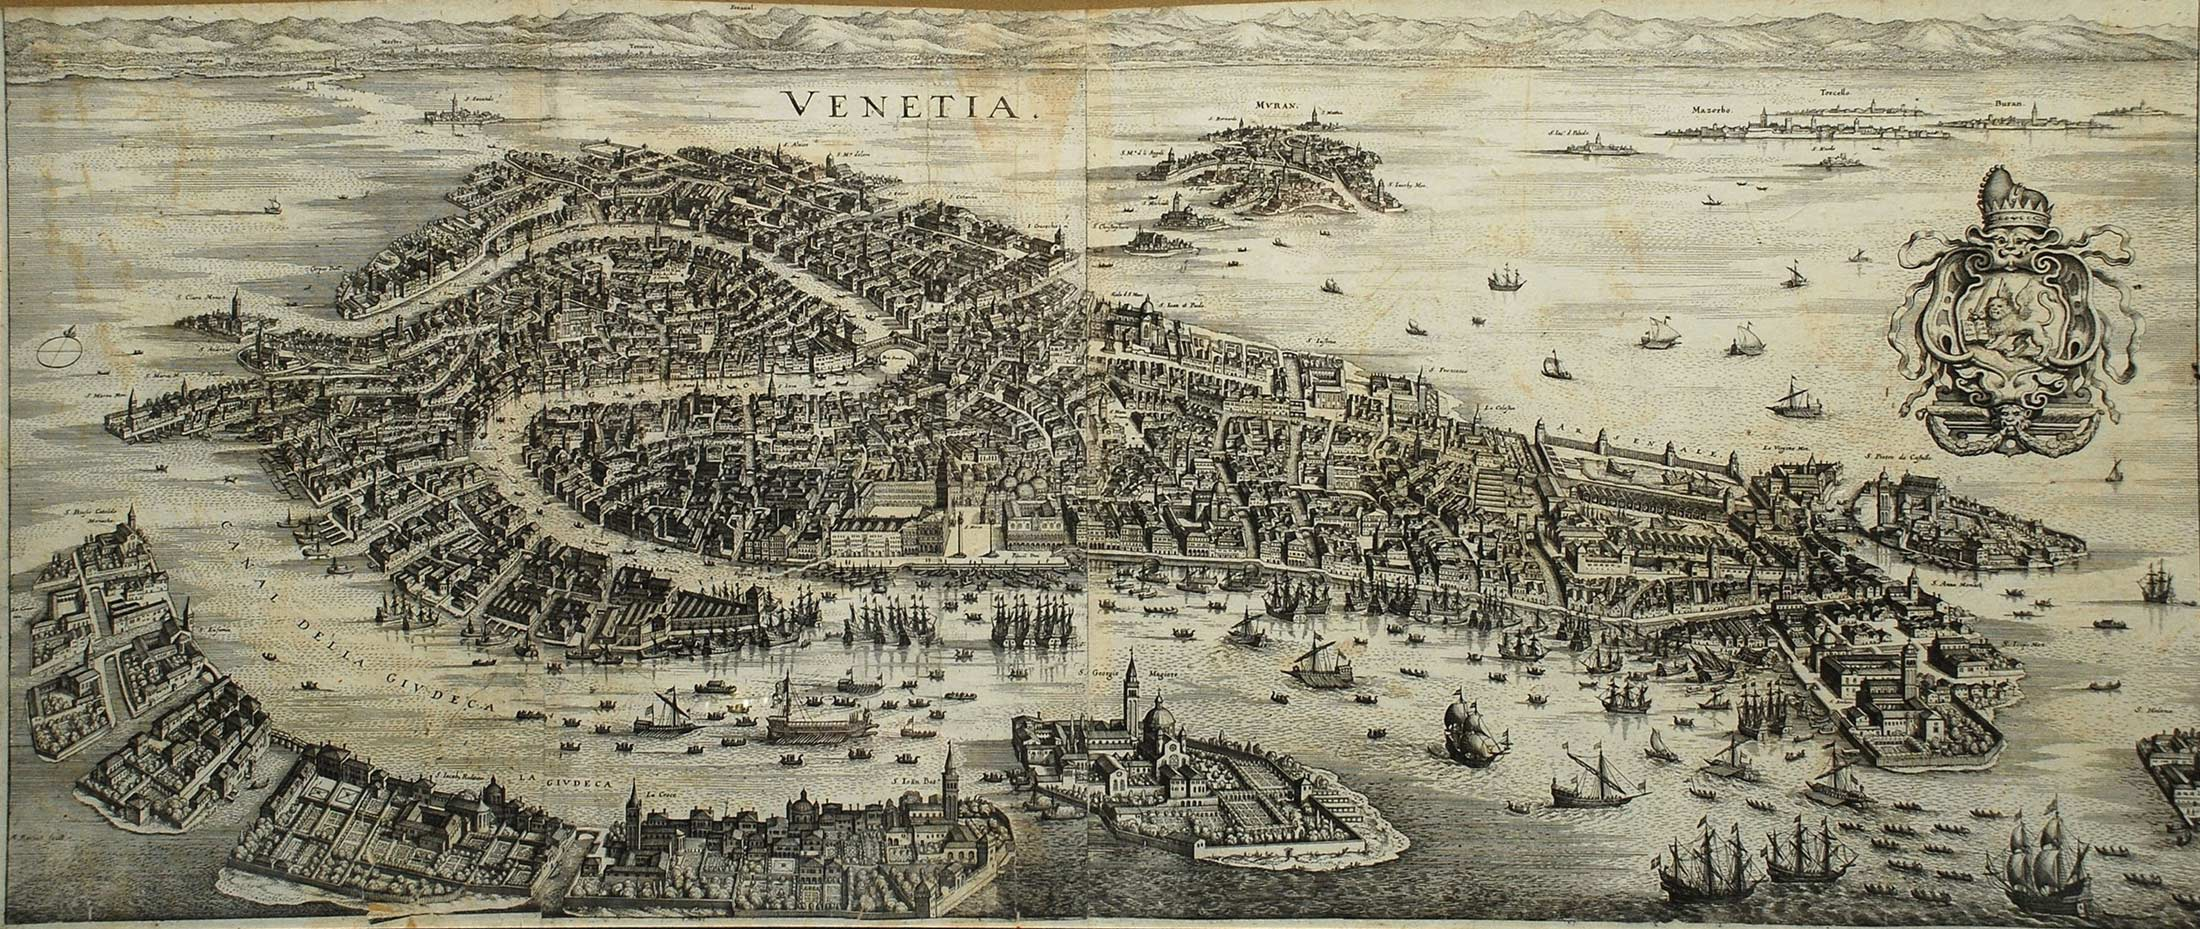 Venice (venezia) Historical Map 1 large map